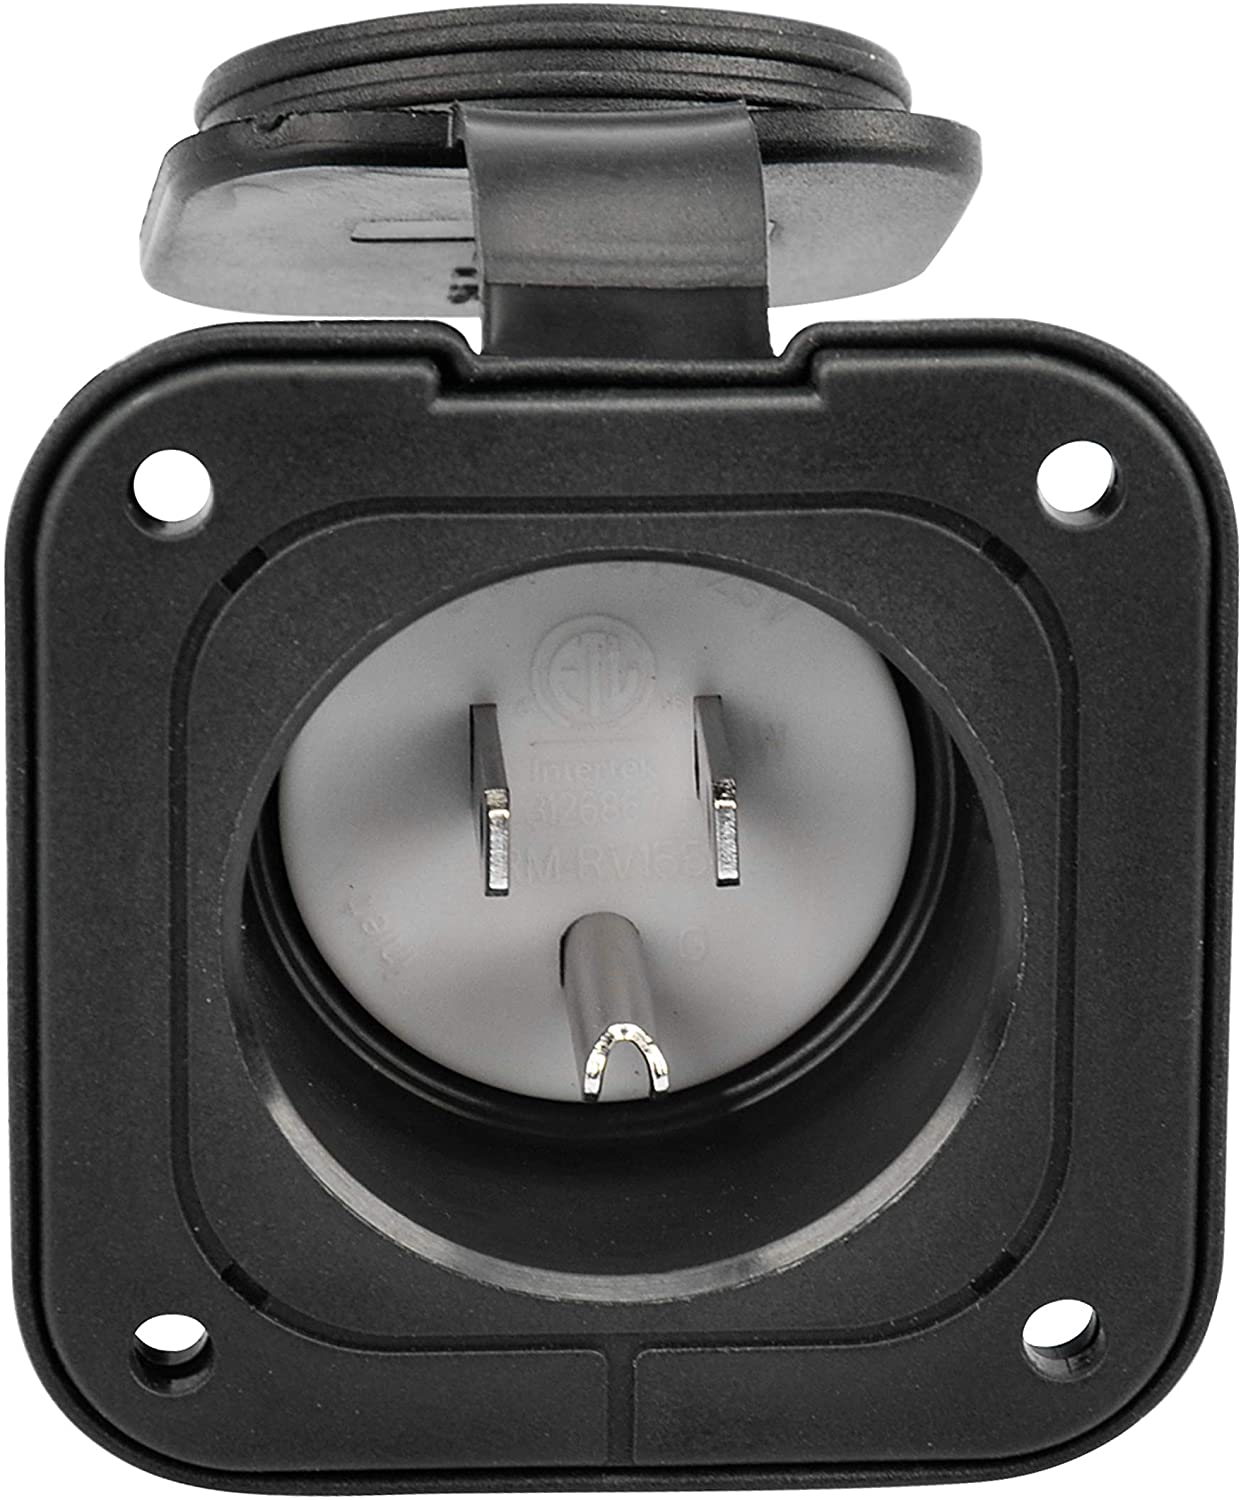 RVGUARD NEMA 5-15, Black 15 Amp Flanged Inlet 125V, Shore Power Inlet Receptacle with Waterproof Cover, 2 Pole 3-Wire, Straight Blade(Black ETL approved)